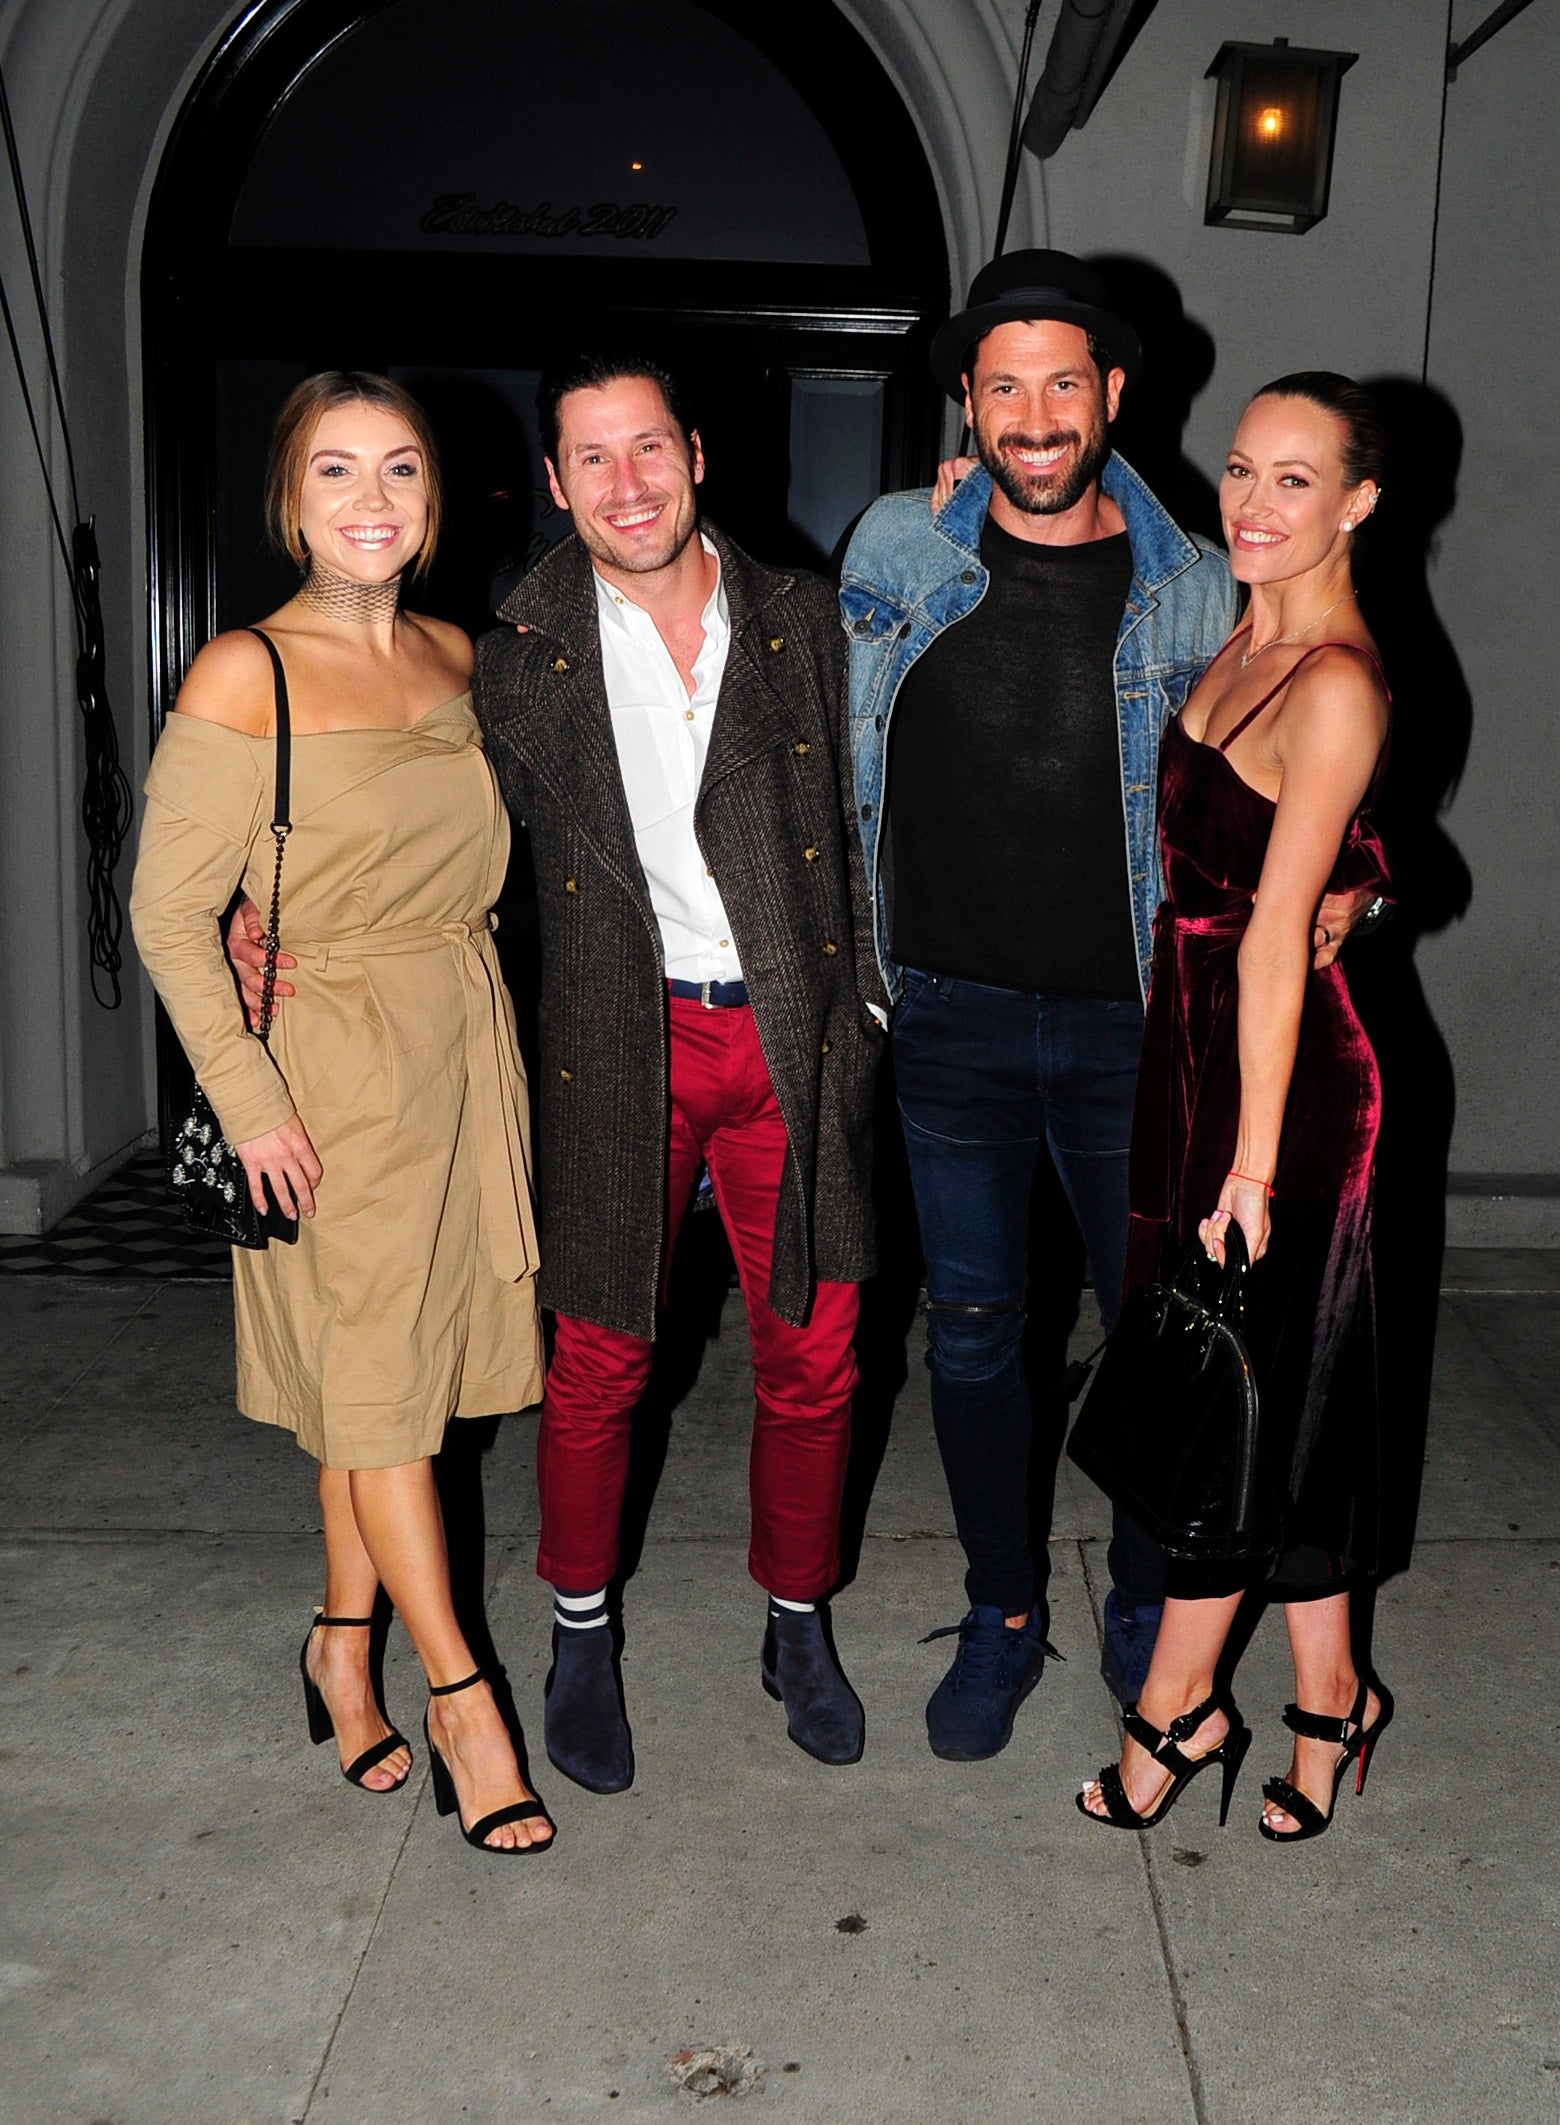 Maksim Chmerkovskiy And Peta Murgatroyd Have A Stylish